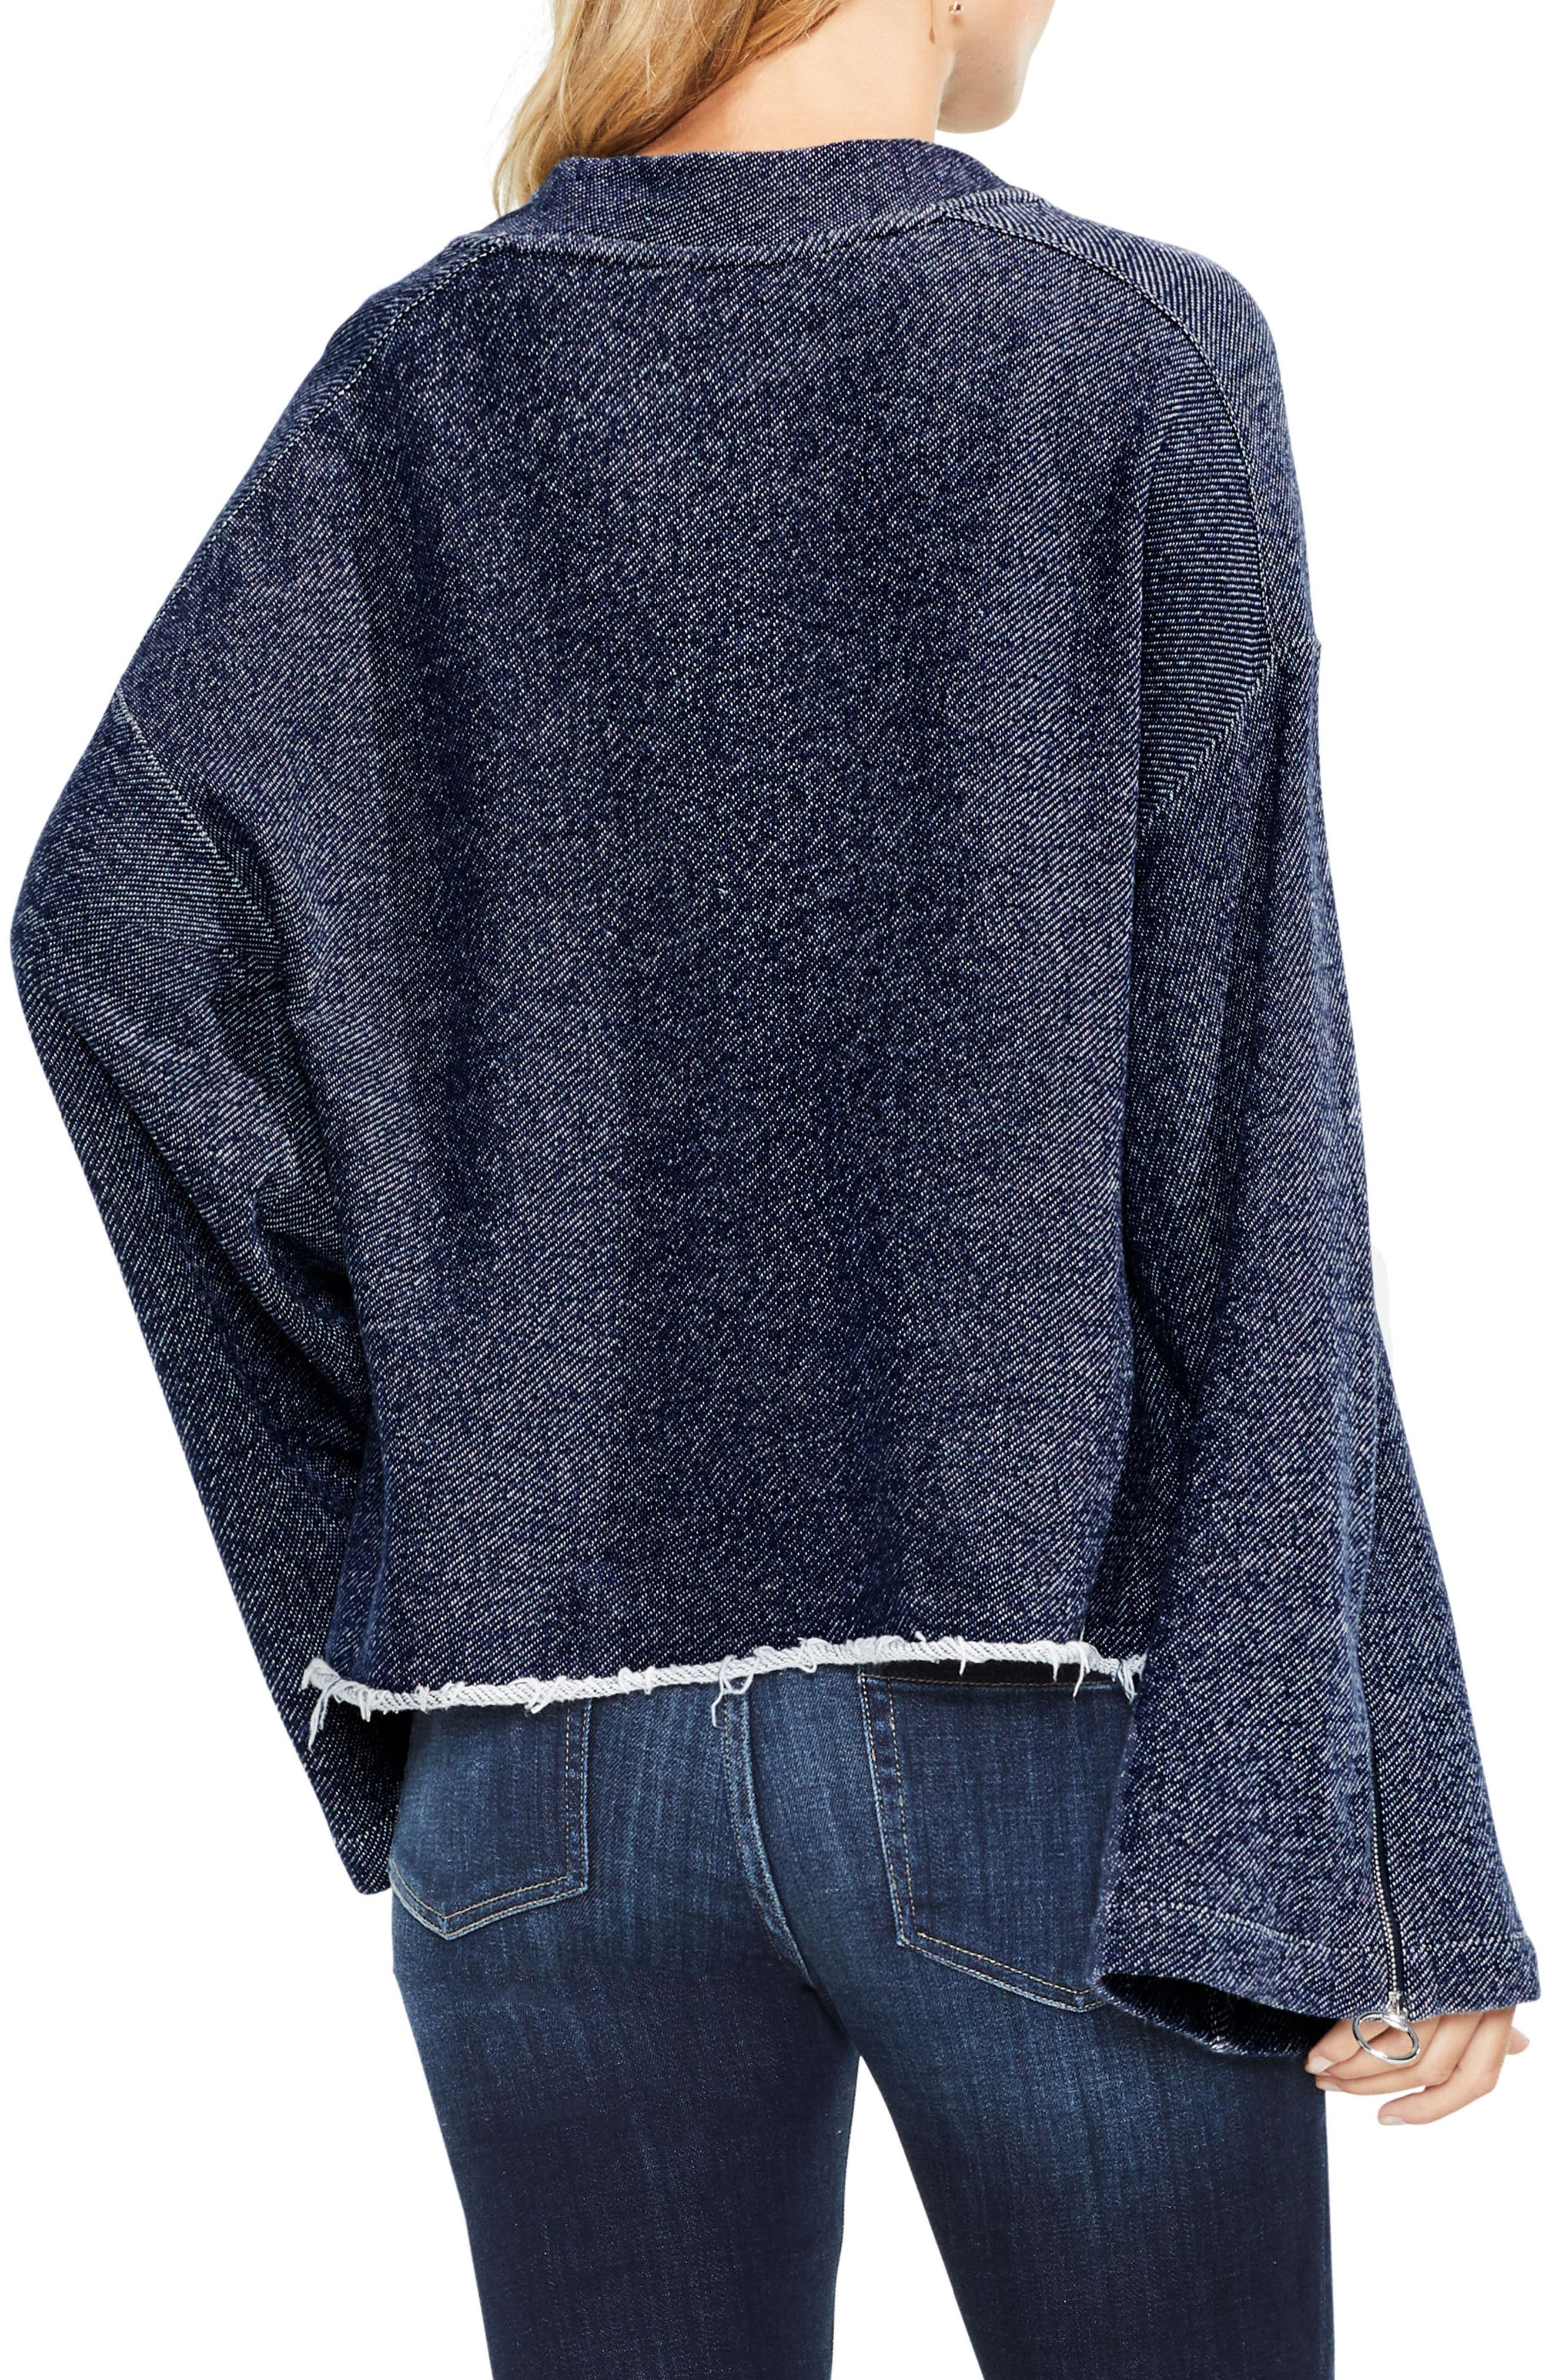 Zip Bell Sleeve Top,                             Alternate thumbnail 2, color,                             430